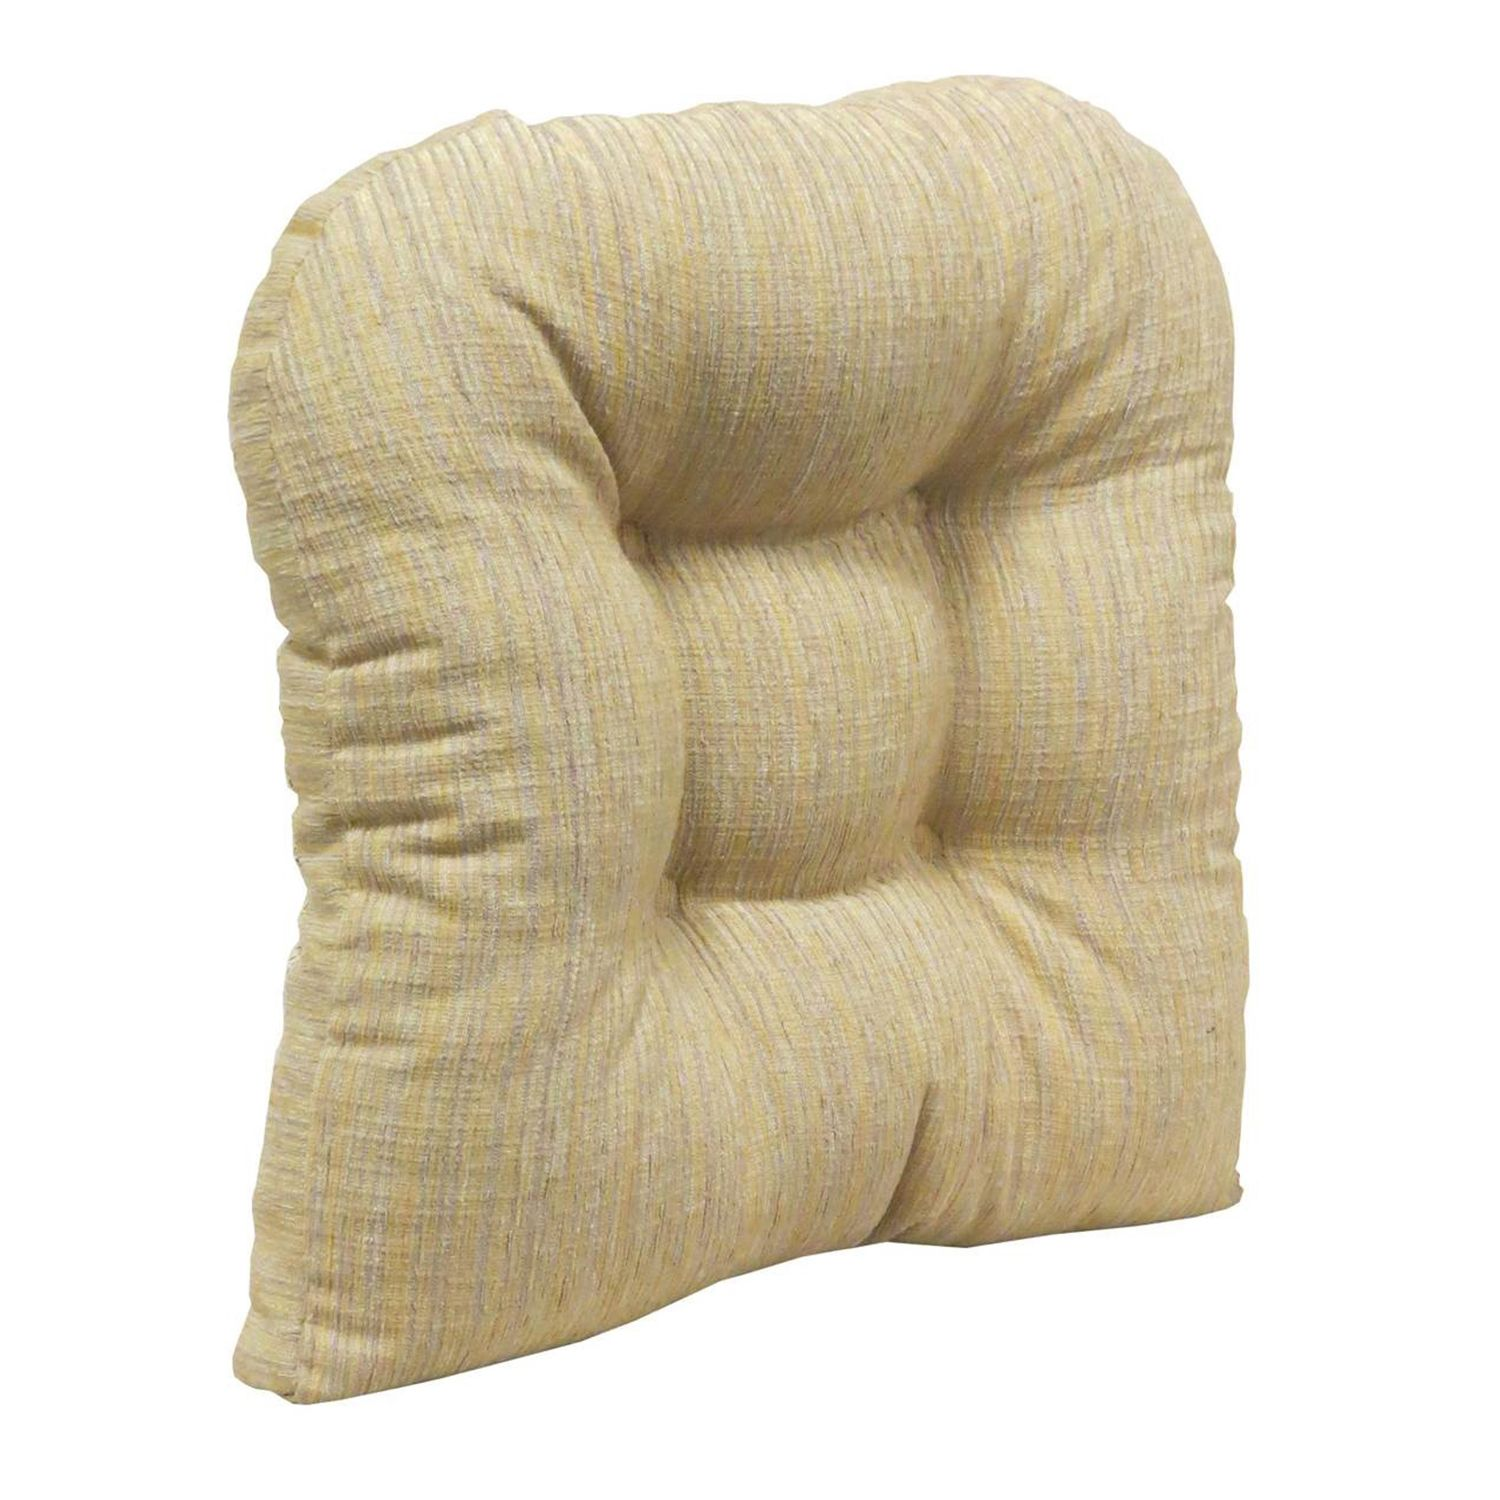 Delightful The Gripper Polar Chenille Extra Large 17u201d X 17u201d Tufted Chair Pad